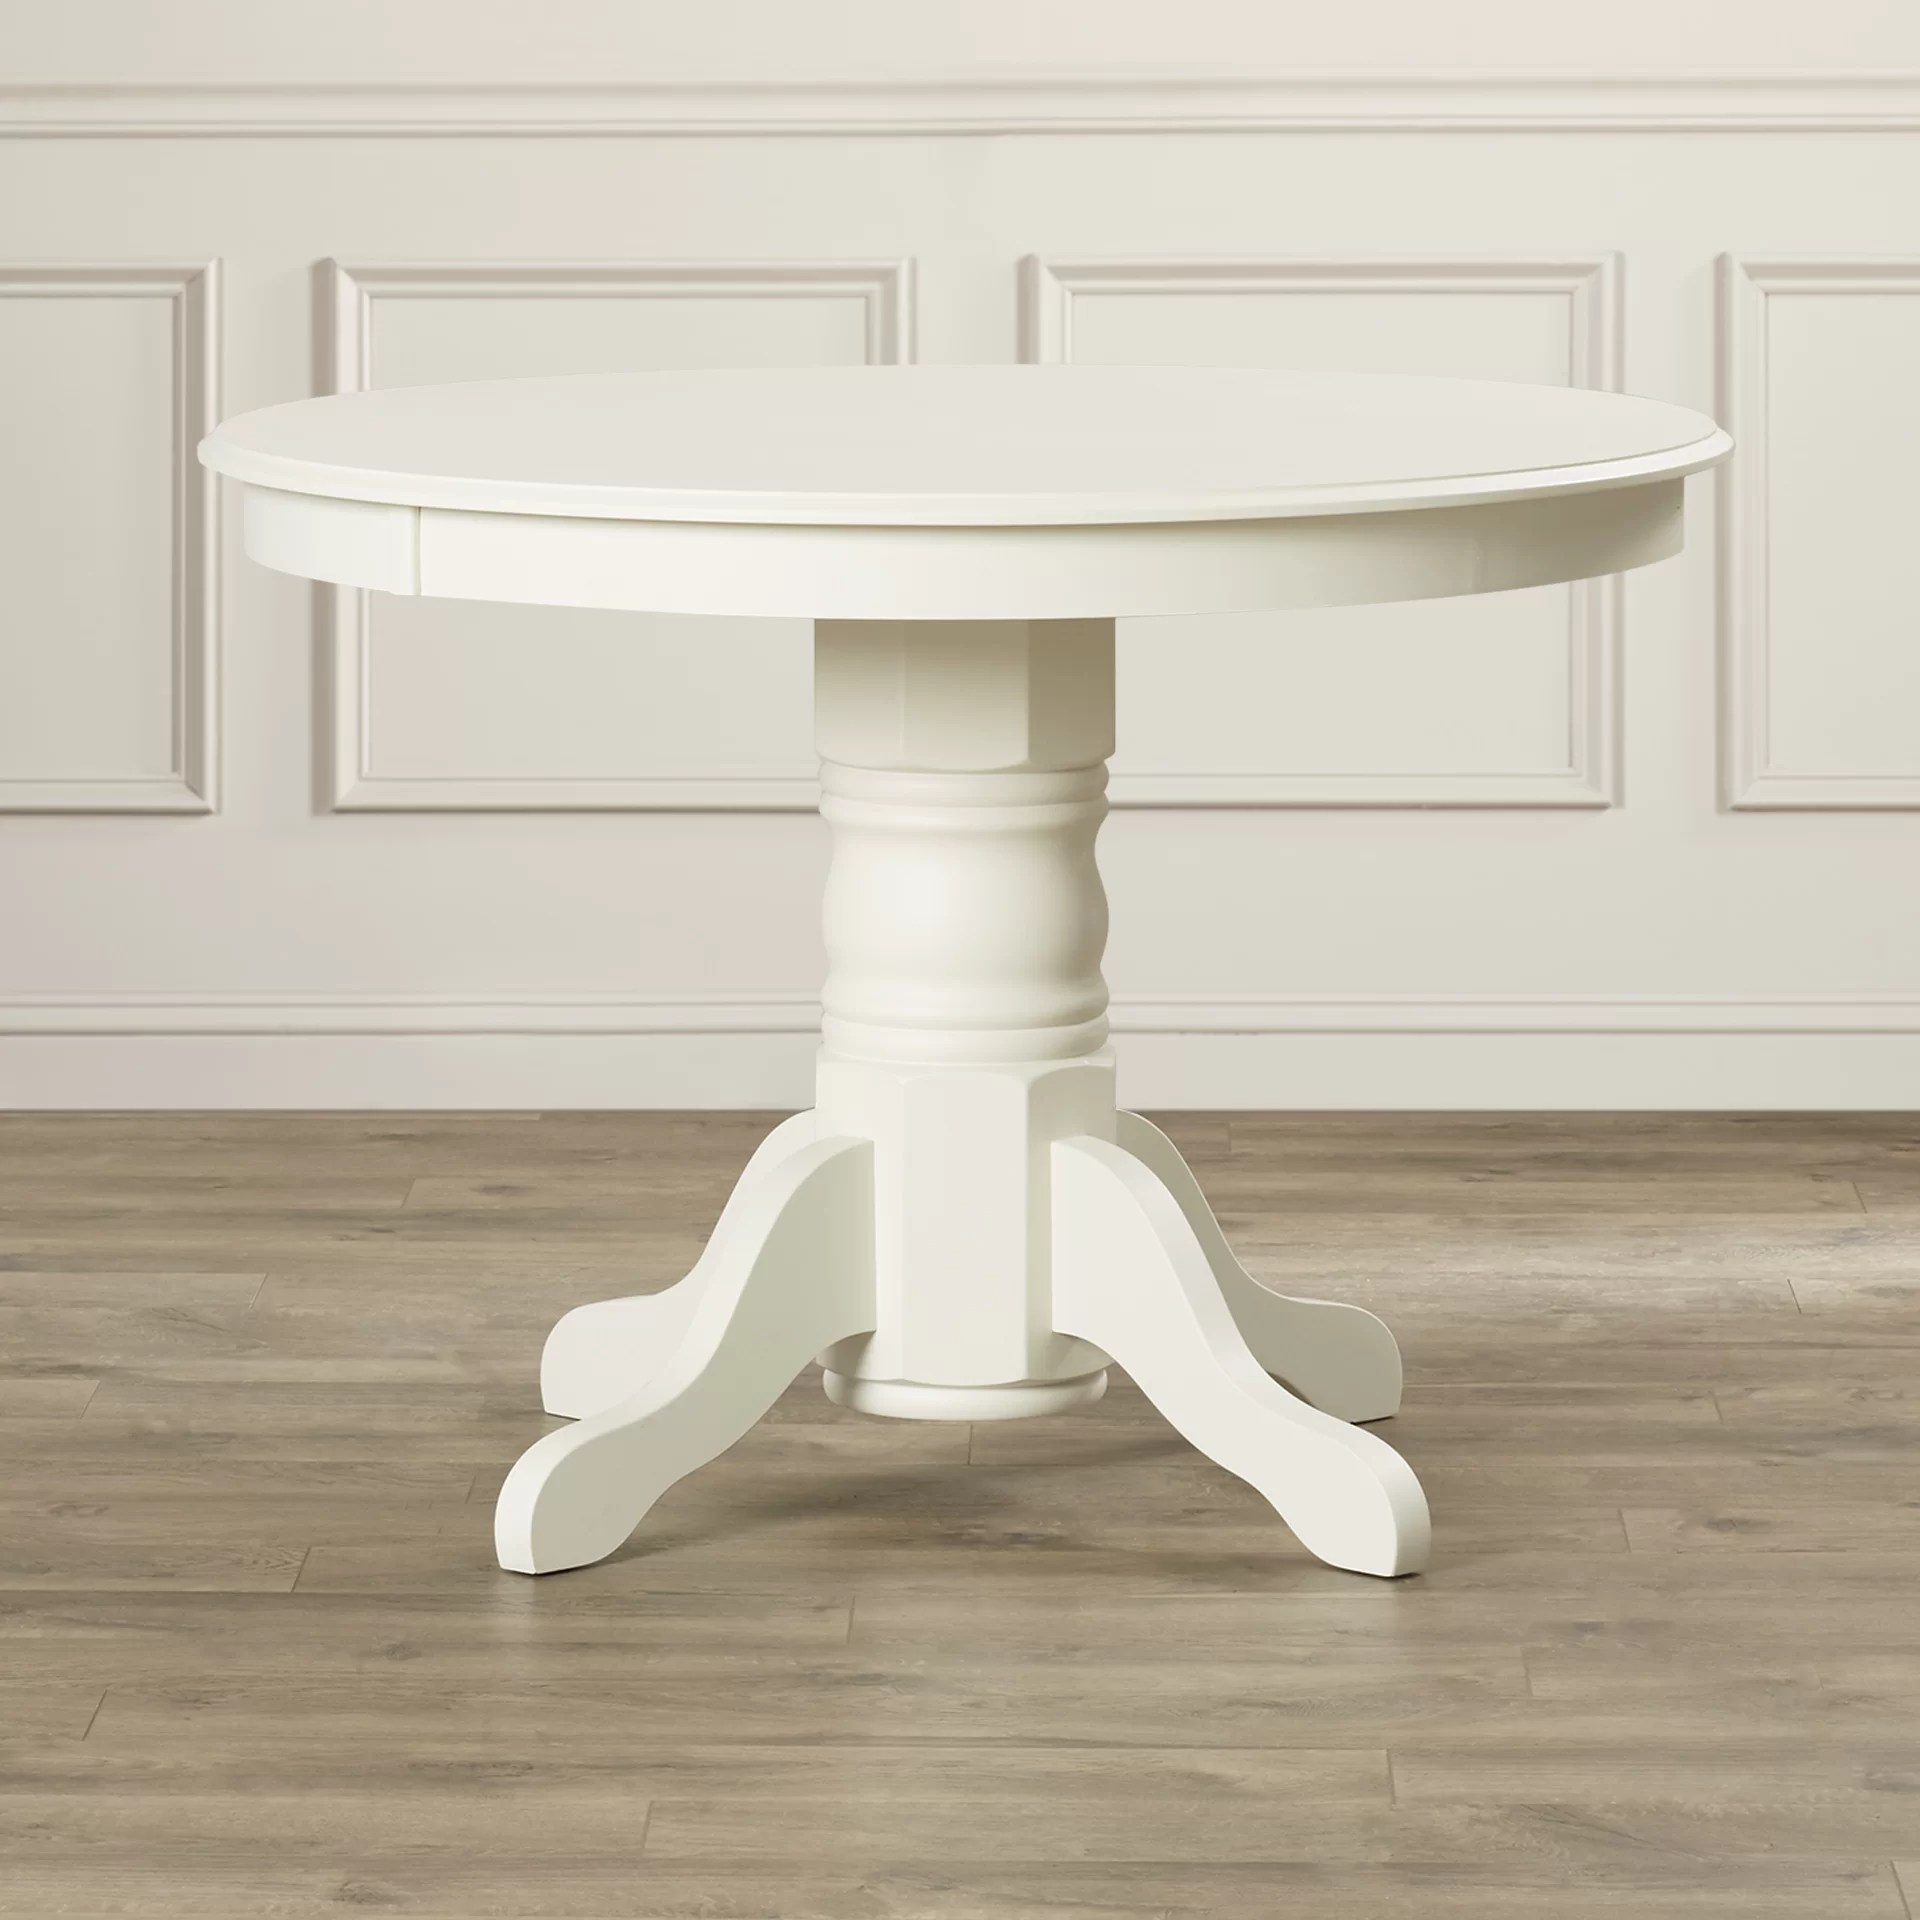 pedestal kitchen table ventless hood parkerton dining reviews birch lane